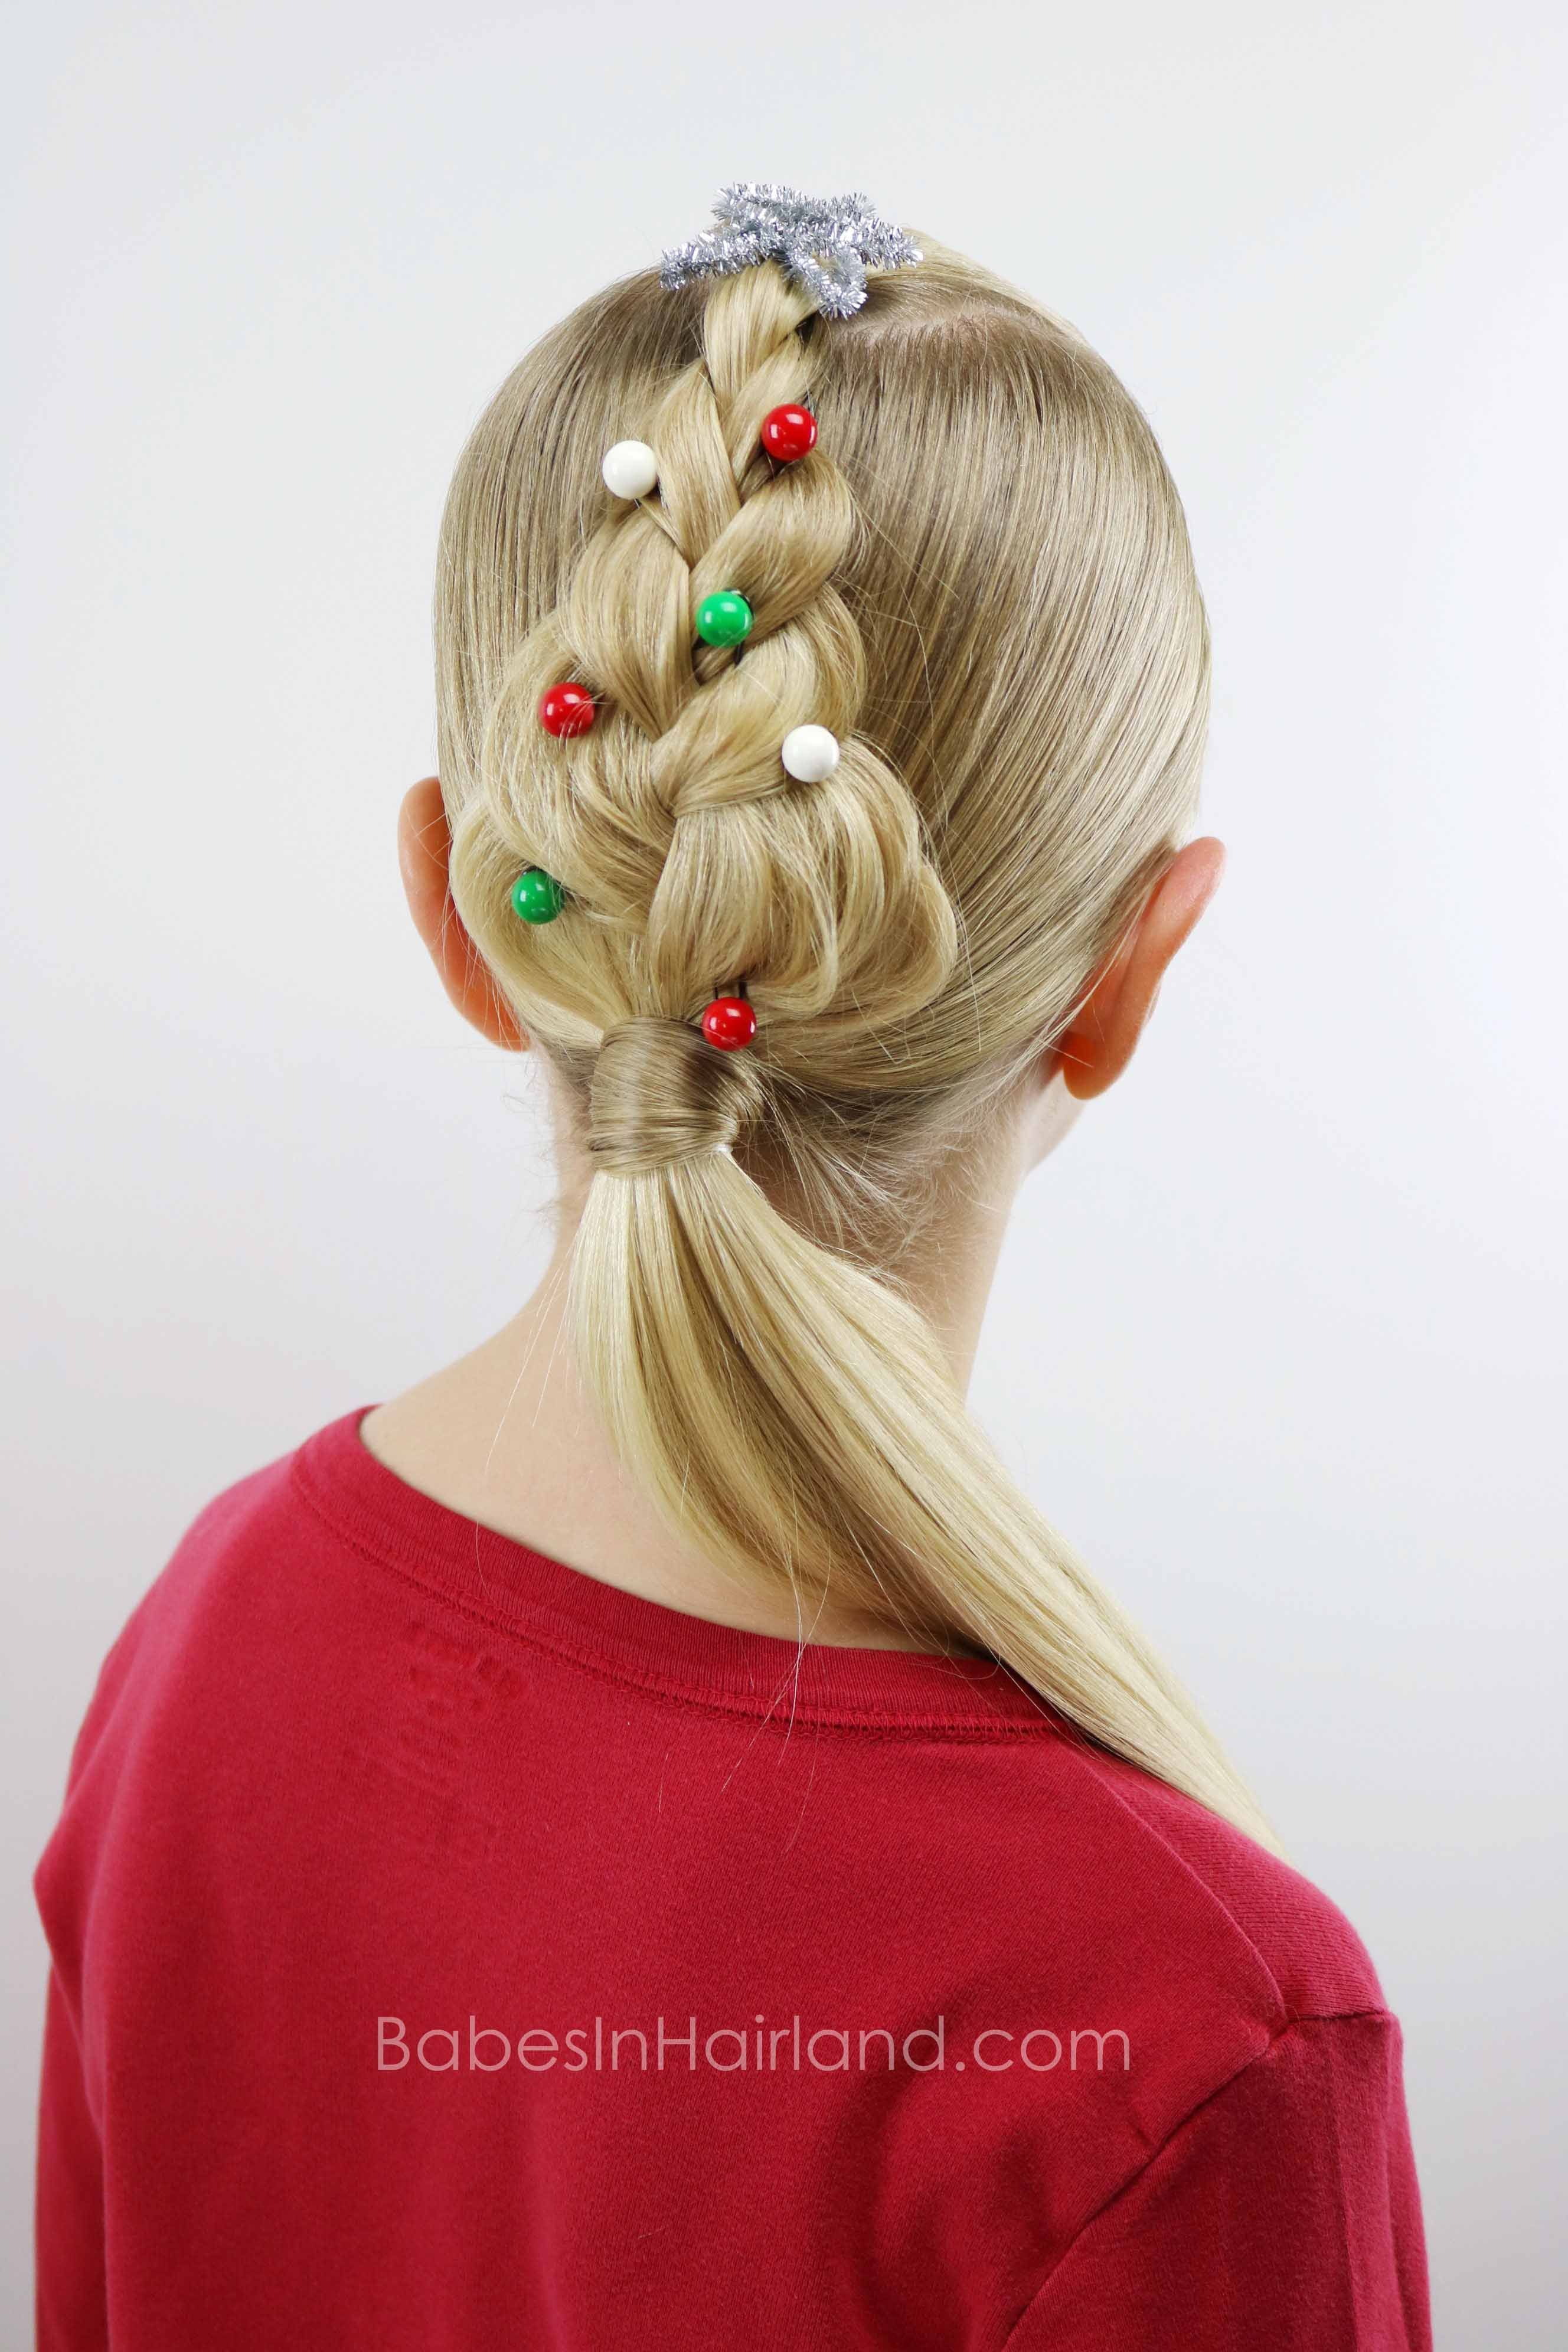 For an easy christmas hairstyle try this cute christmas tree braid